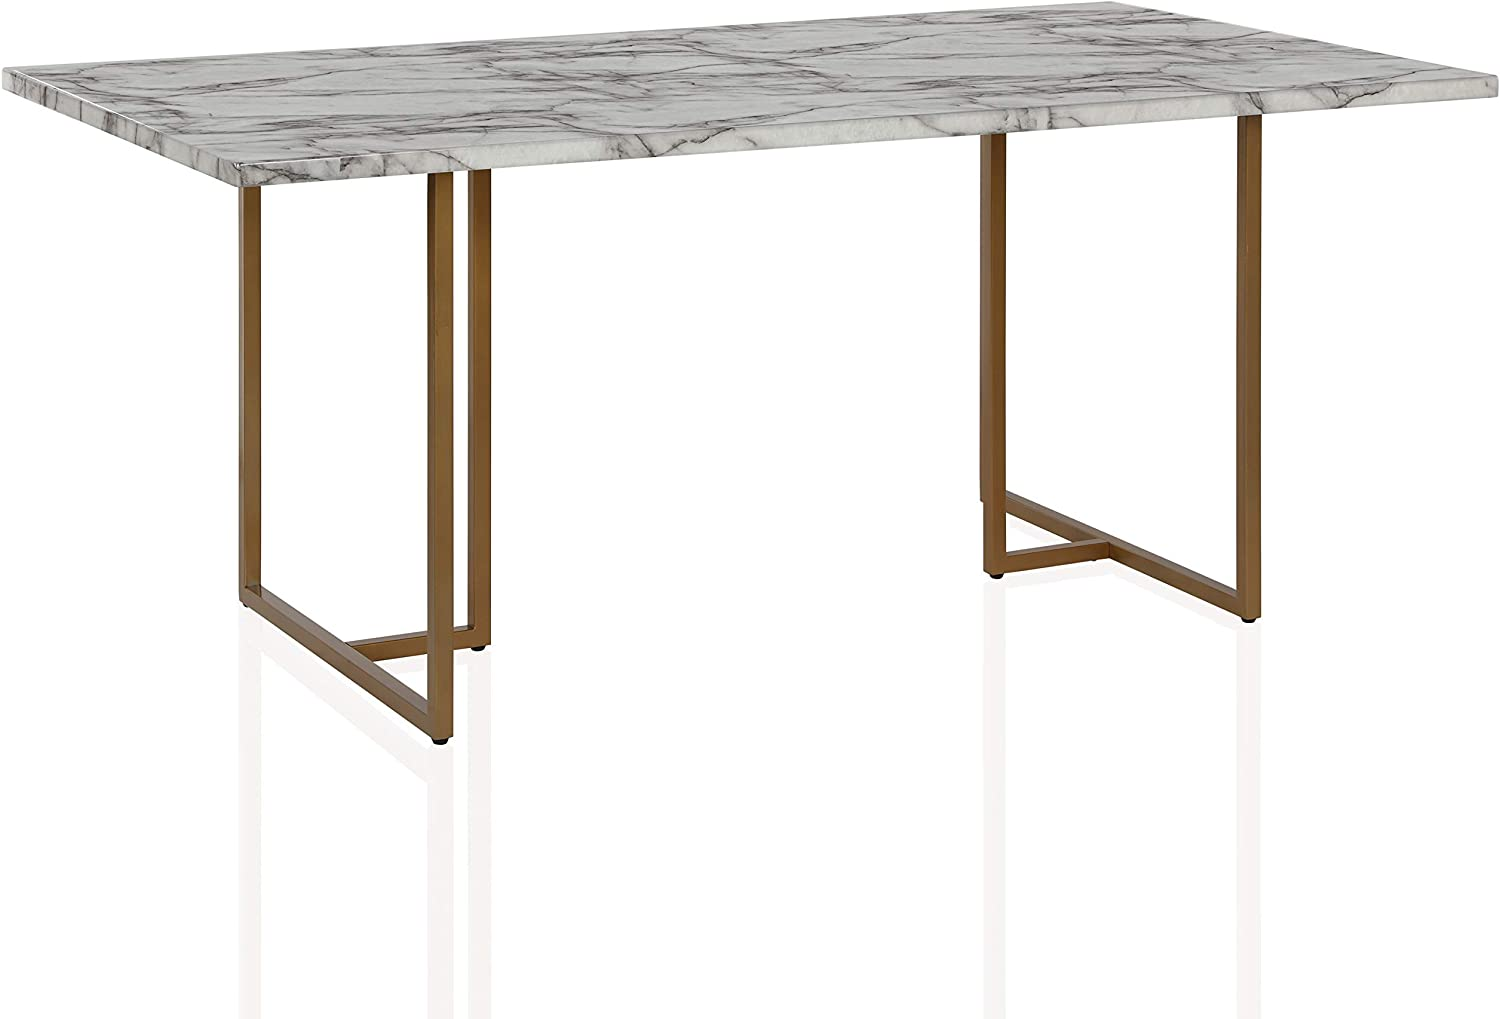 Cosmoliving By Cosmopolitan Dl8880 Cosmoliving Edith Rectangular Faux Marble White With Brass Golden Legs Dining Table Home Kitchen Kolenik Furniture